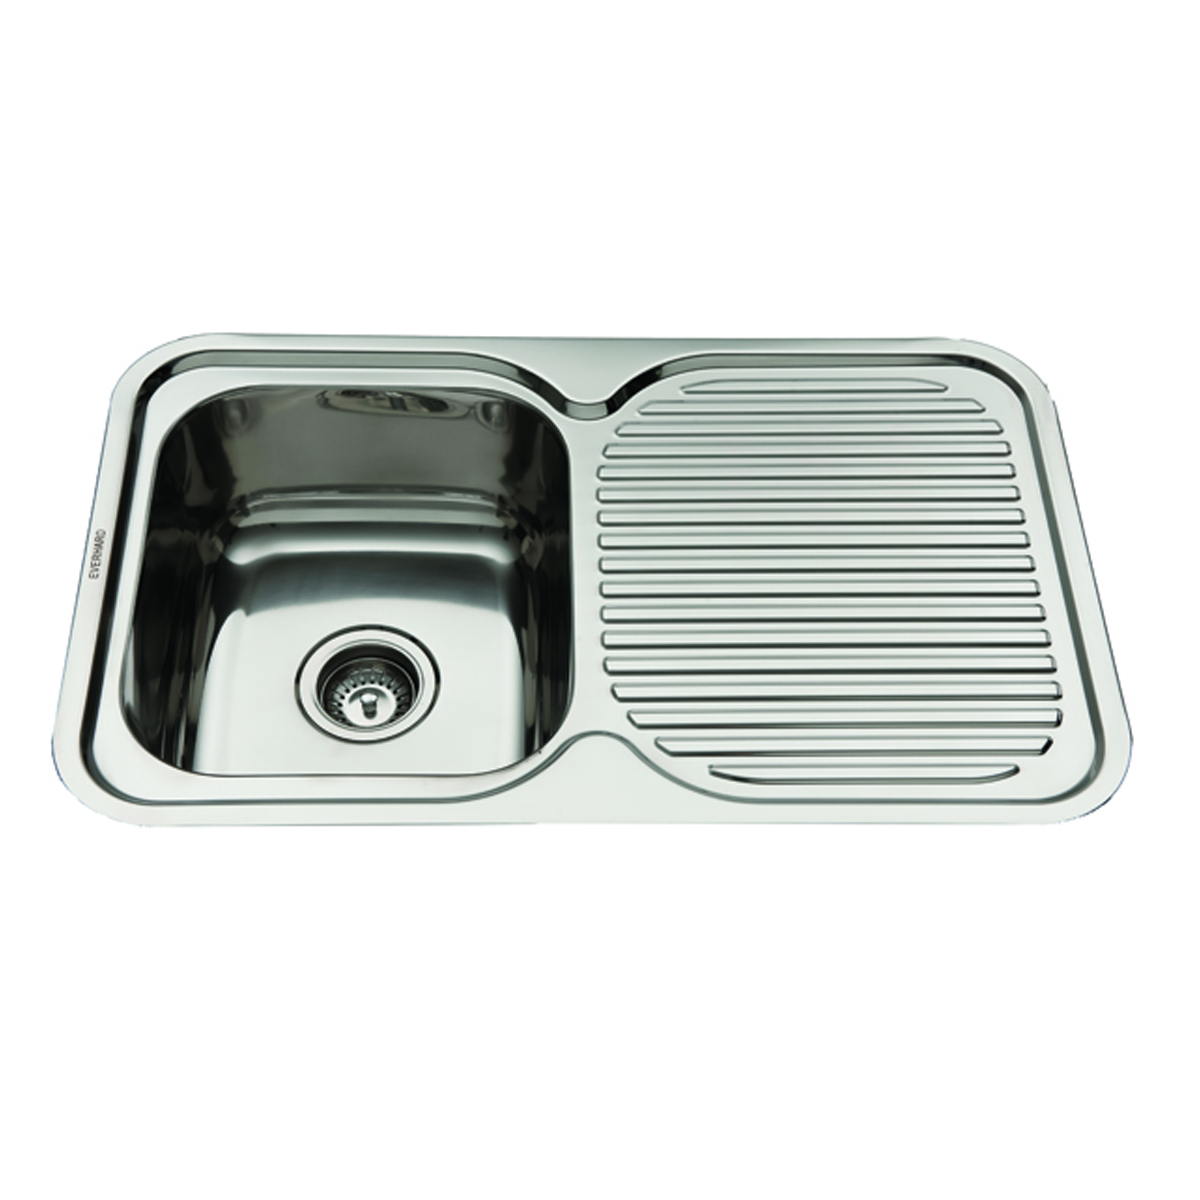 Everhard Nugleam 780mm Single Bowl Flushline Sink